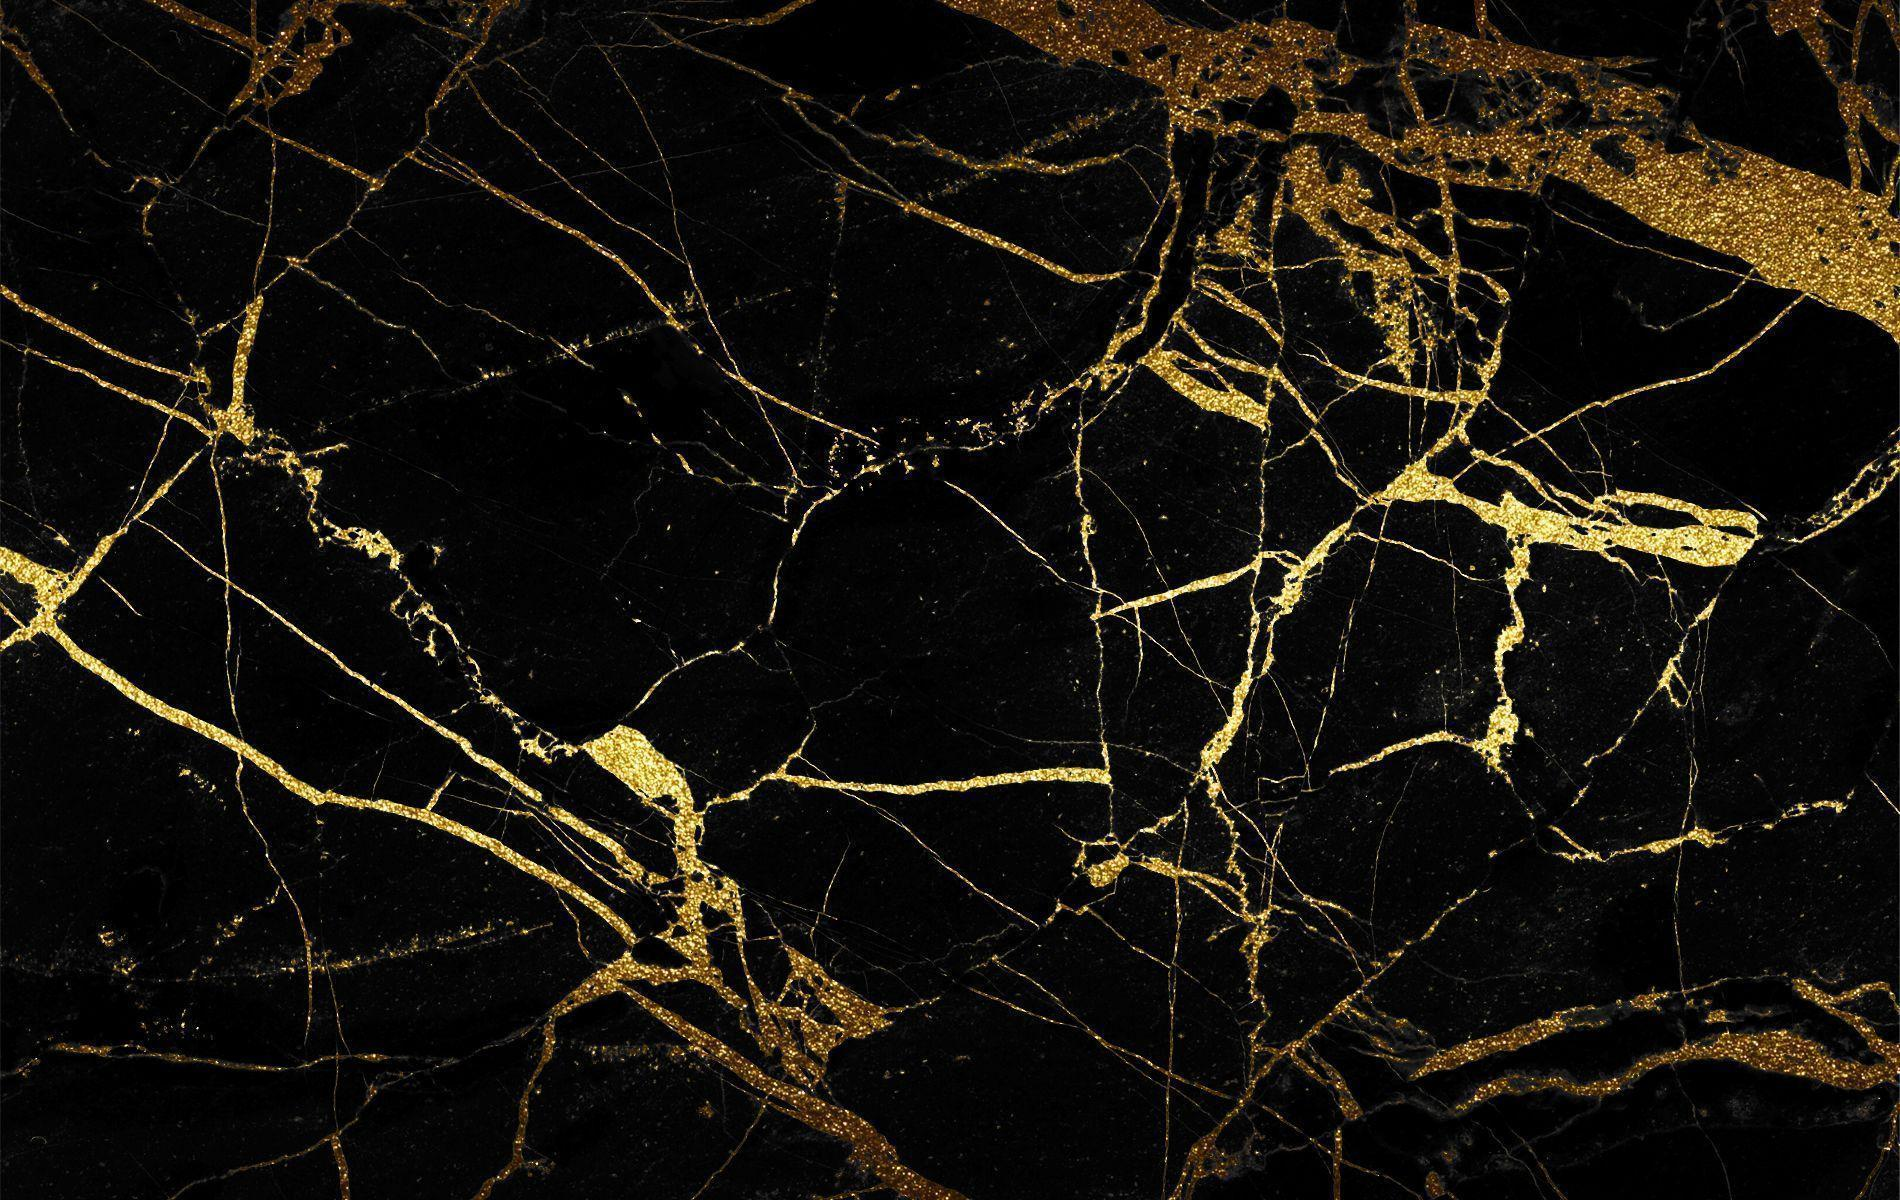 Good Wallpaper Marble Black And White - wp1814754  Gallery_707989.jpg